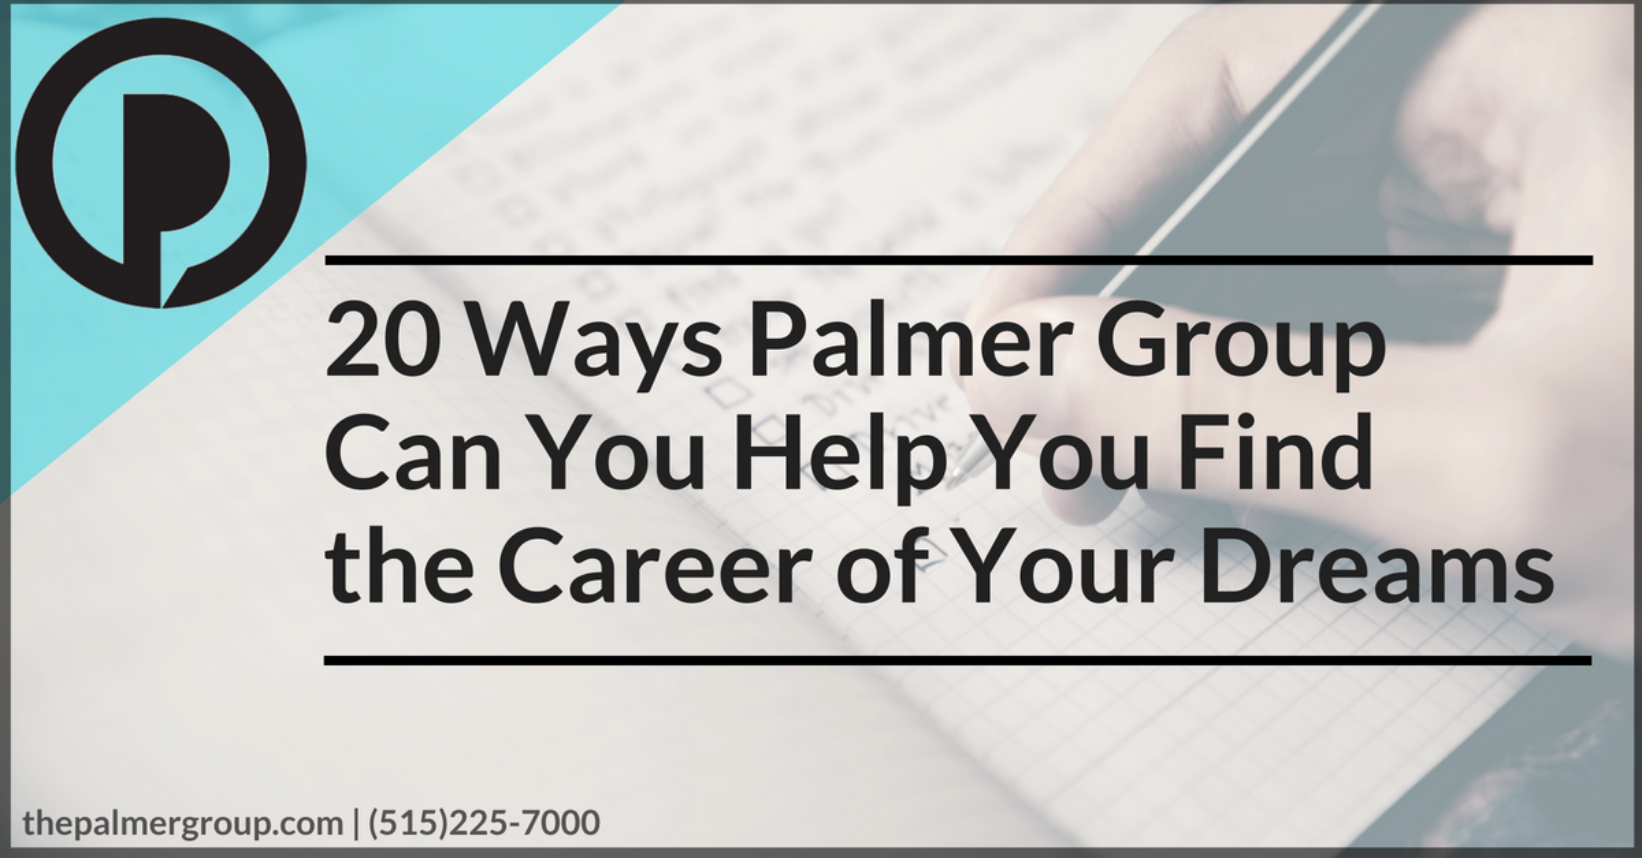 20 Ways Palmer Group Can You Help You Find the Career of Your Dreams